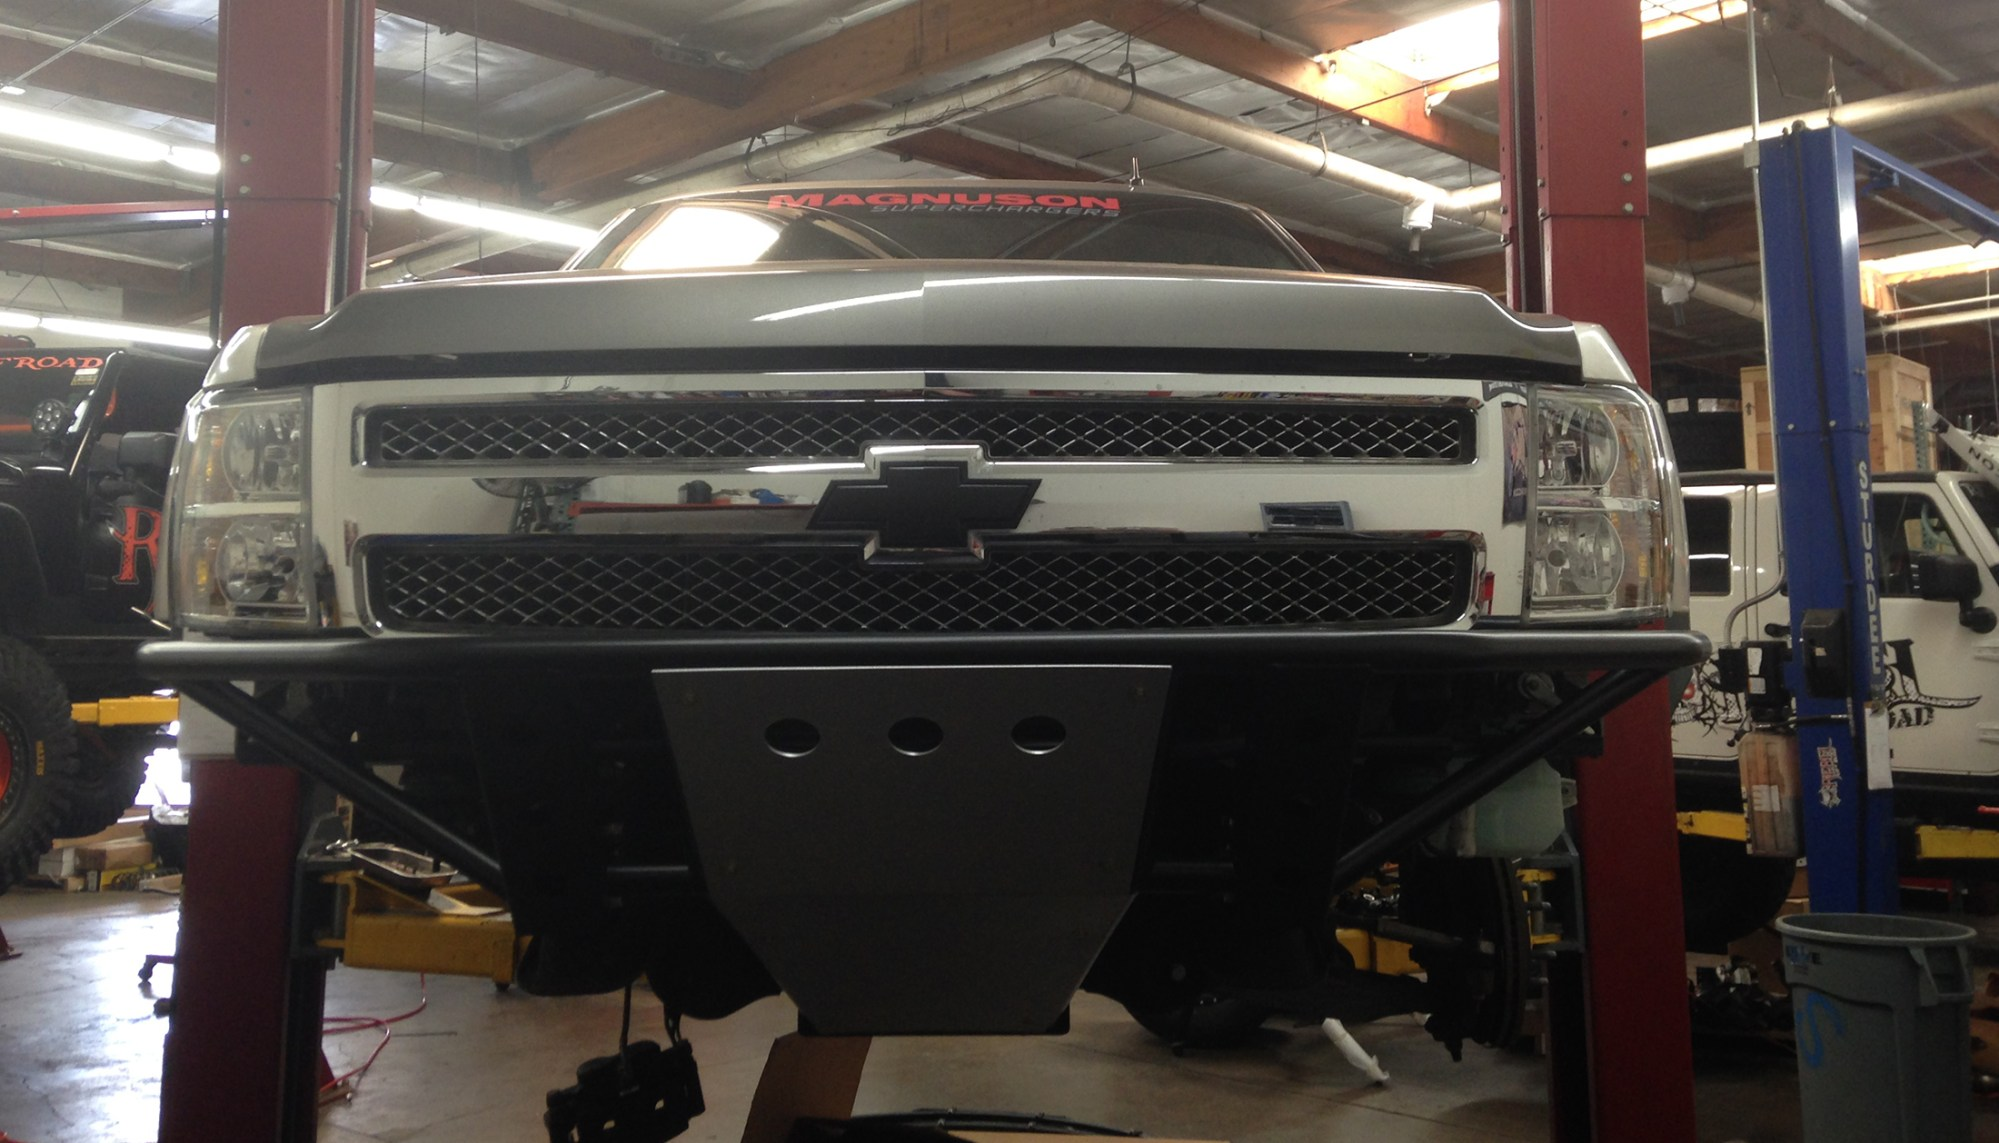 hight resolution of sneak peek of magnuson superchargers upgrade to readylift suspension on 2012 chevy silverado 1500 readylift